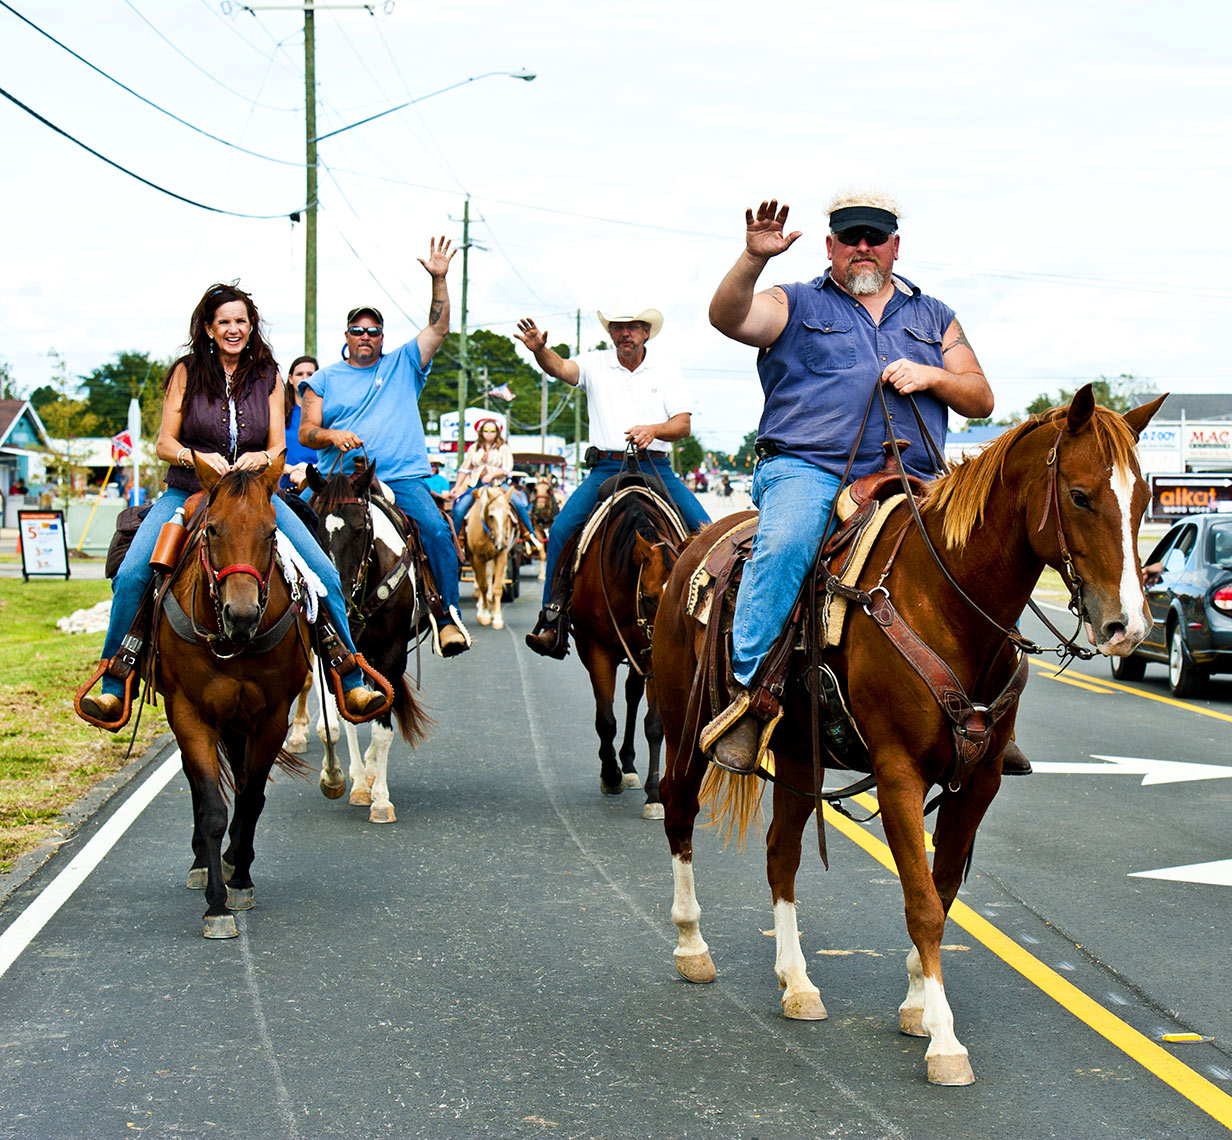 Howdy Bryan Regan Raleigh editorial photography Mule days Benson